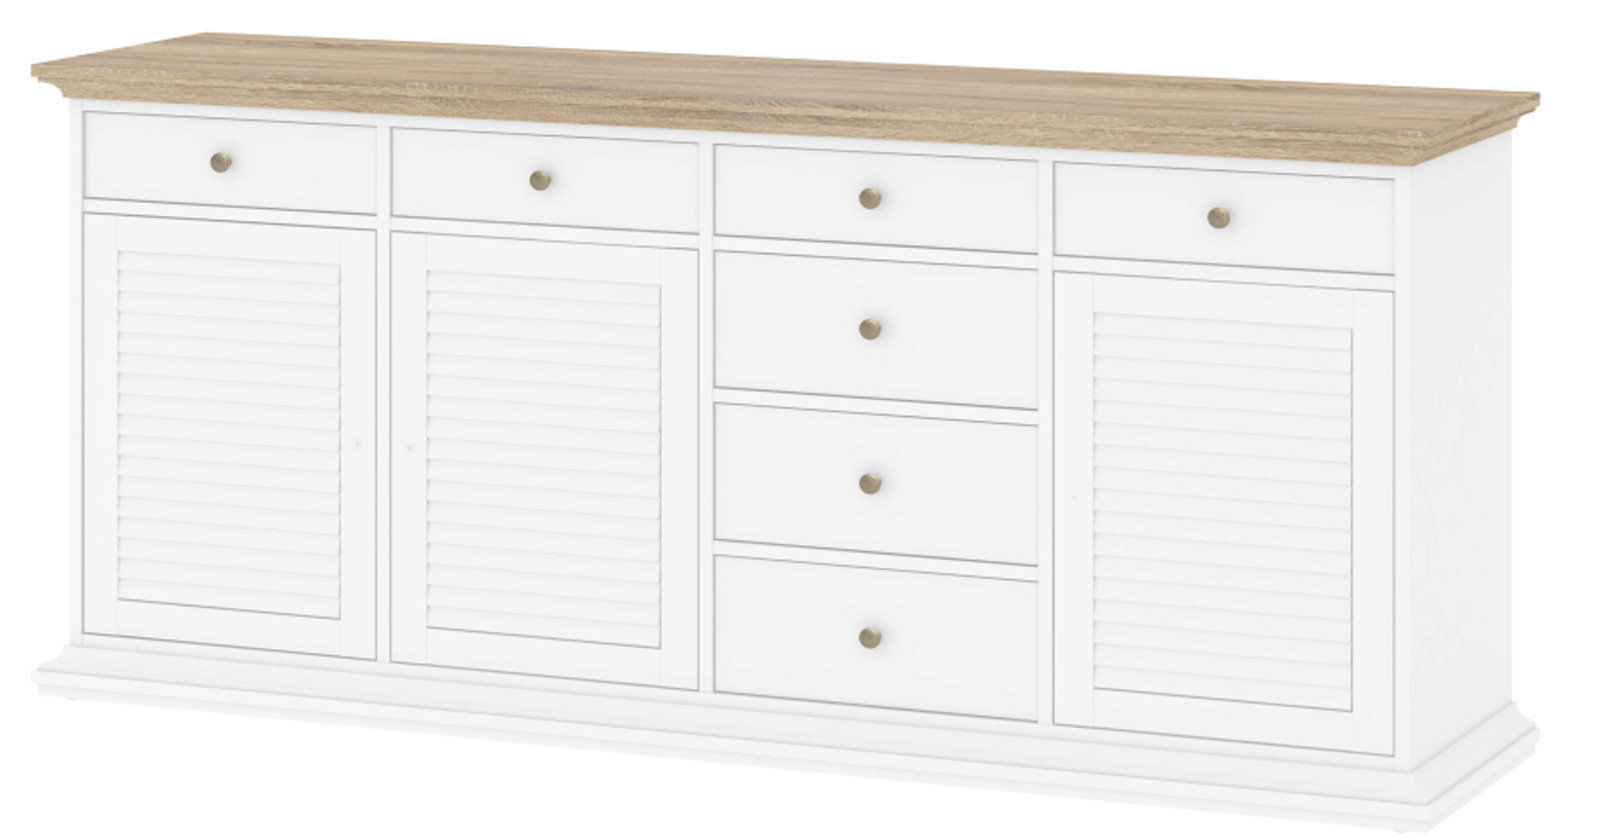 Küche Highboard Landhaus 3trg Sideboard Paris Kommode Anrichte Schrank Highboard